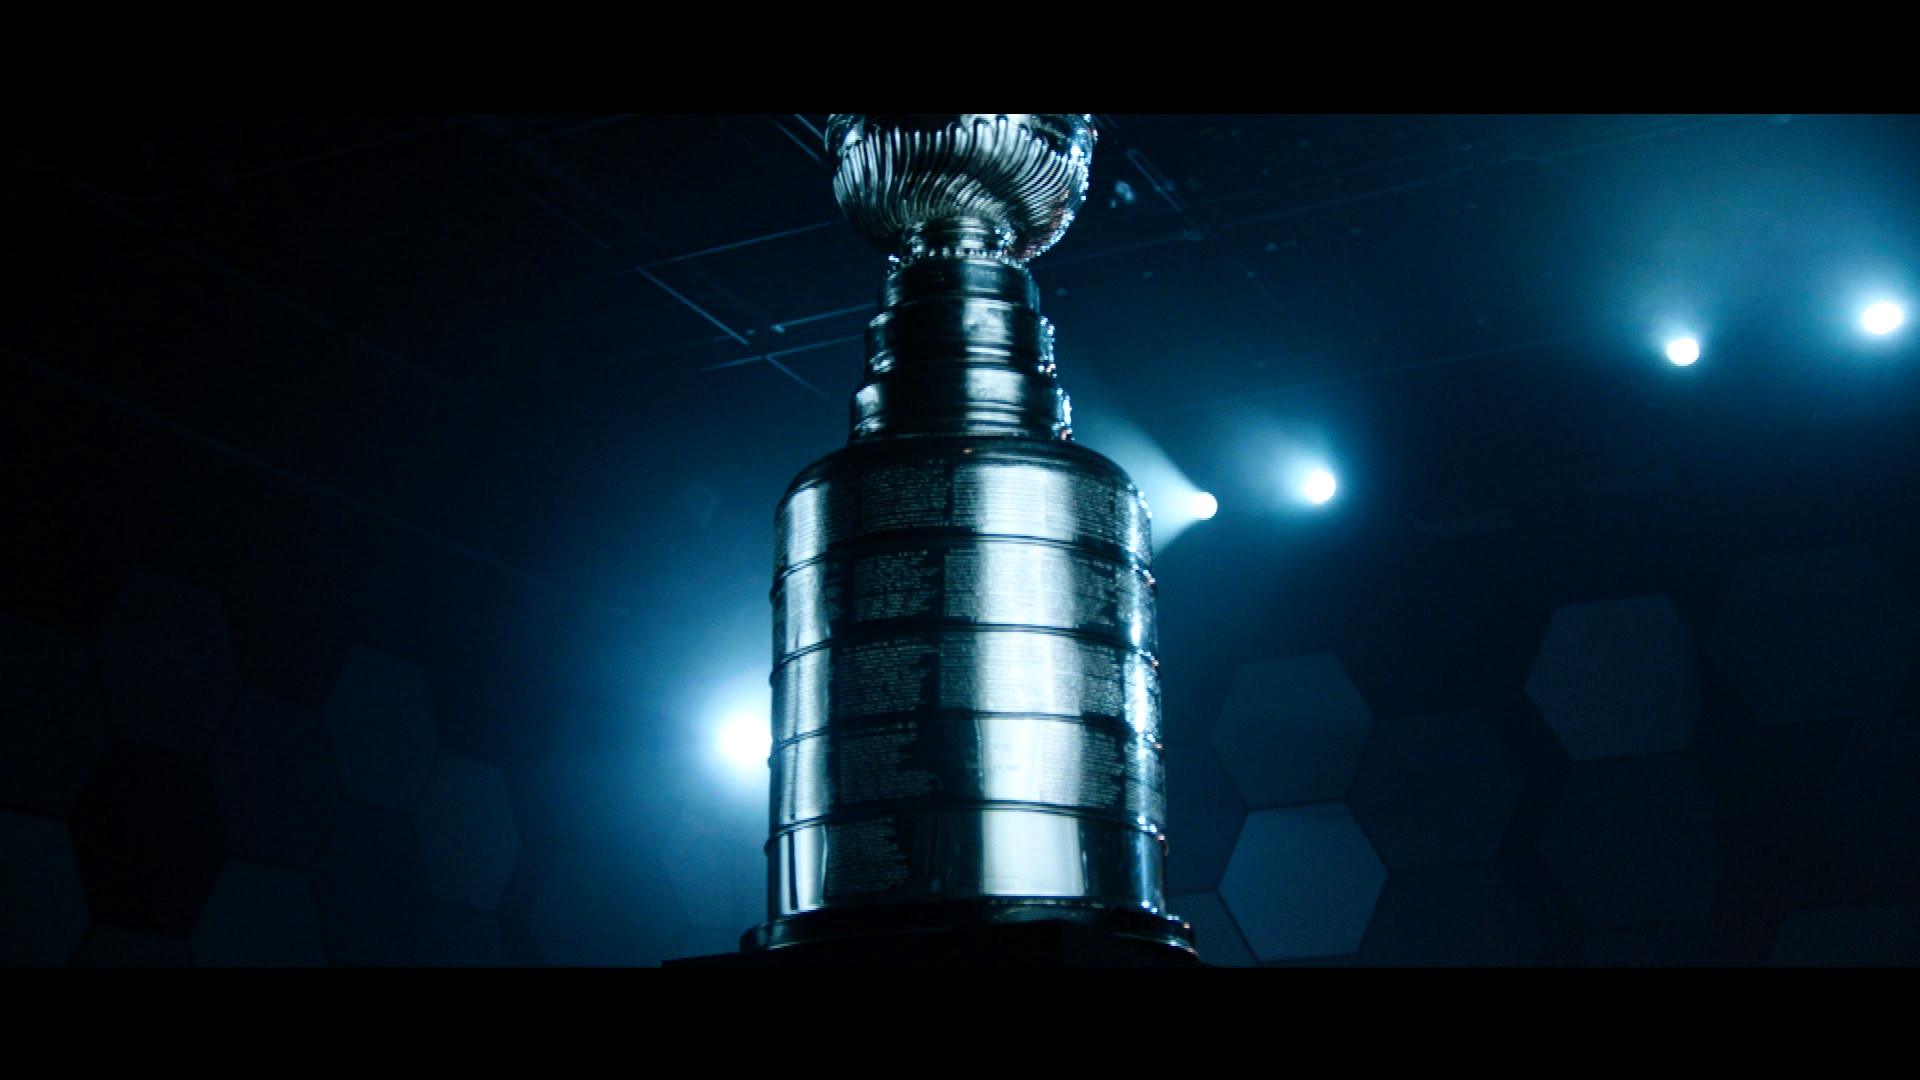 Lord Stanley tells a story, Round 2 of the Stanley Cup Playoffs begin